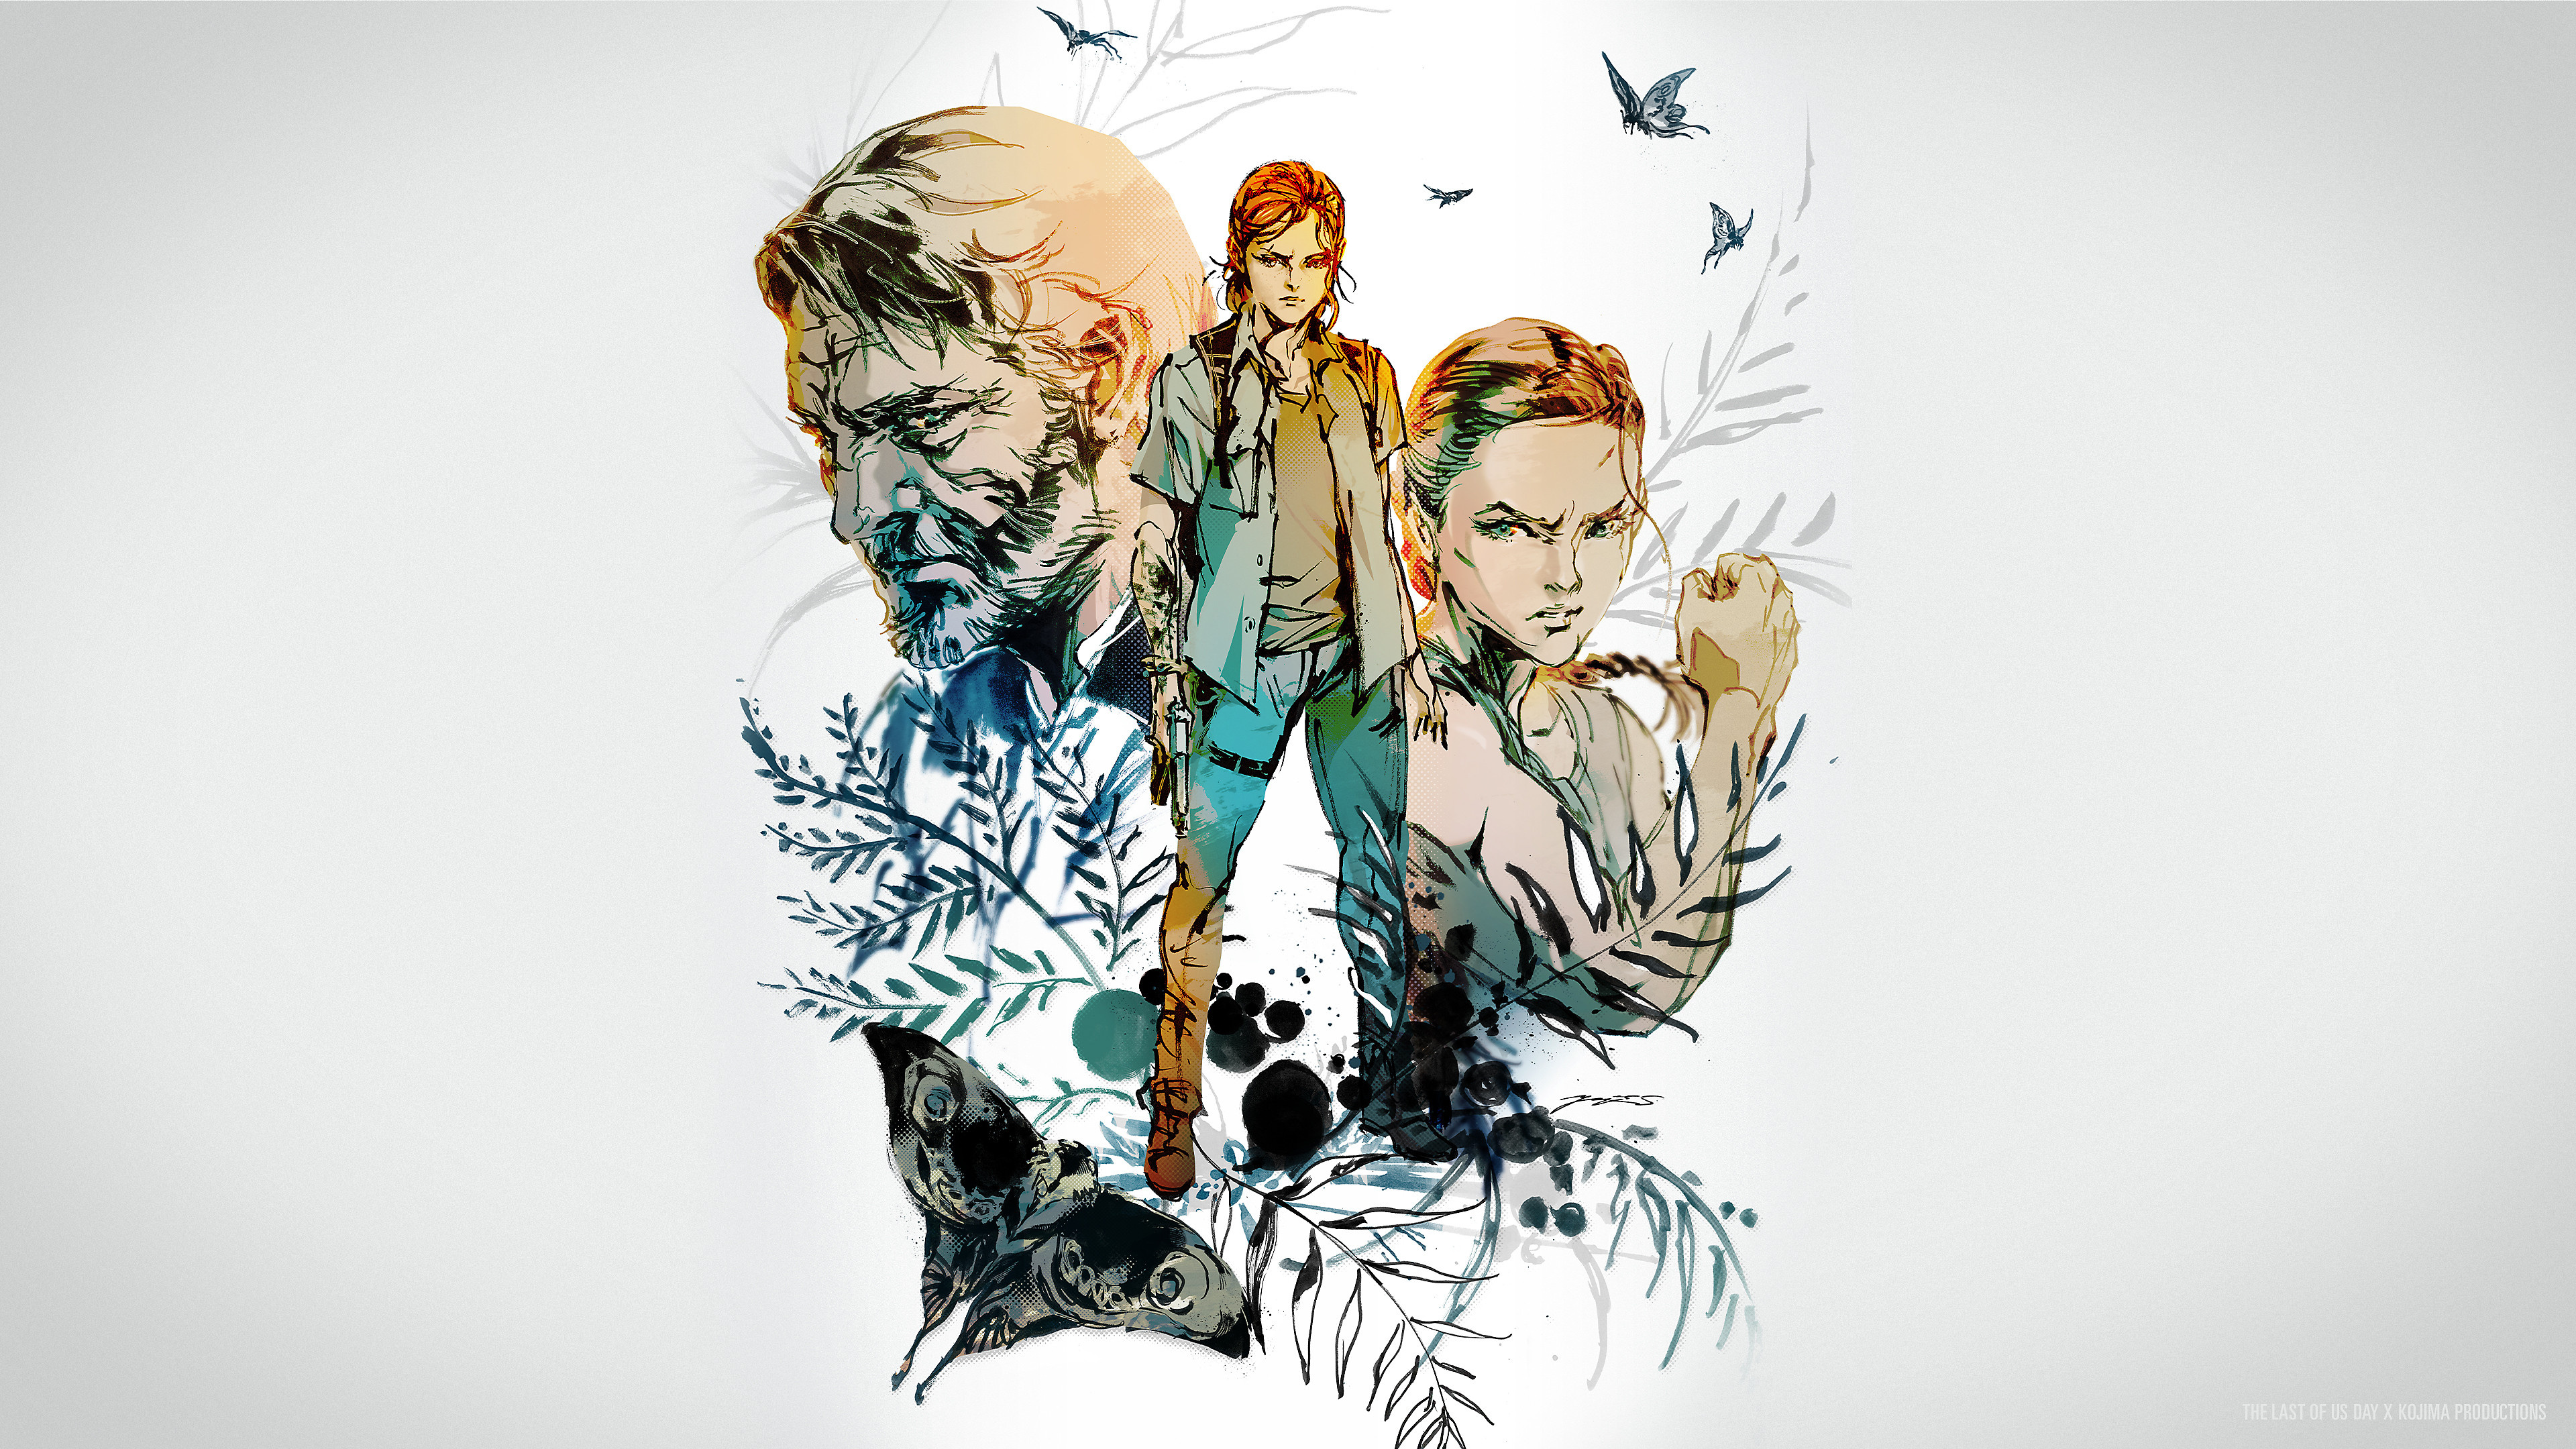 Metal Gear Artist Creates Stunning Last Of Us 2 Illustration Perfect For Wallpaper Push Square